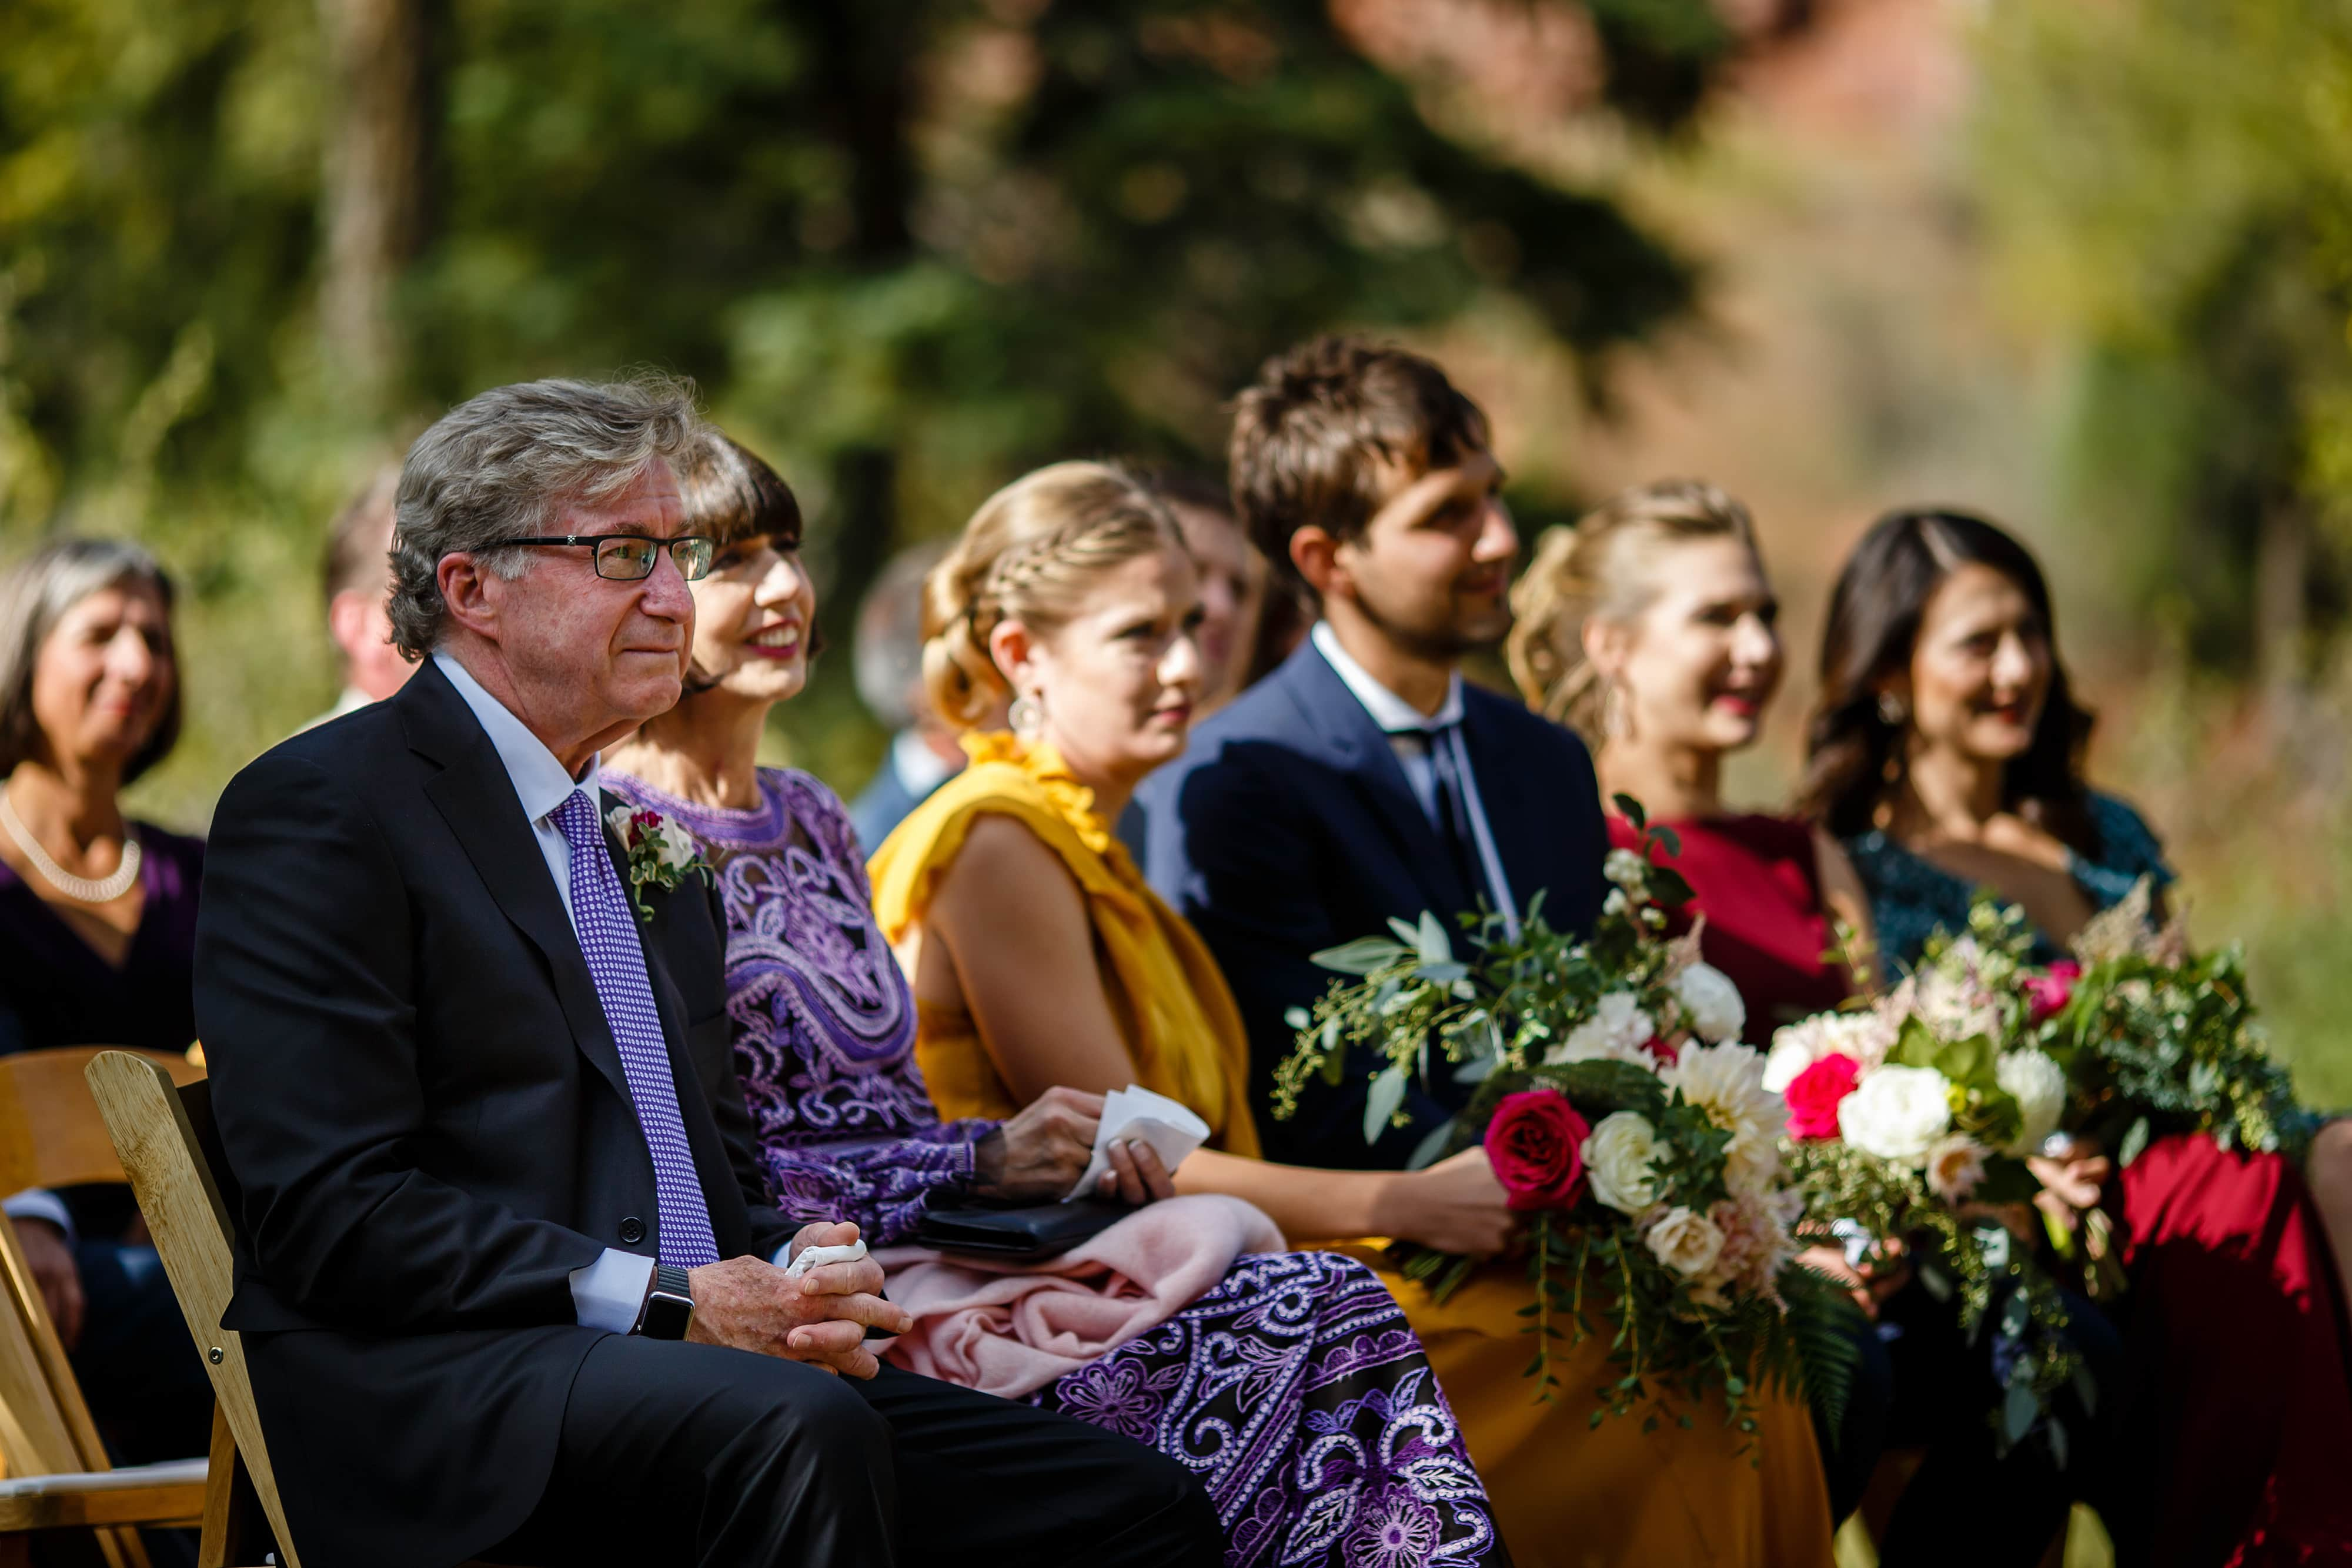 The brides family looks on during the ceremony